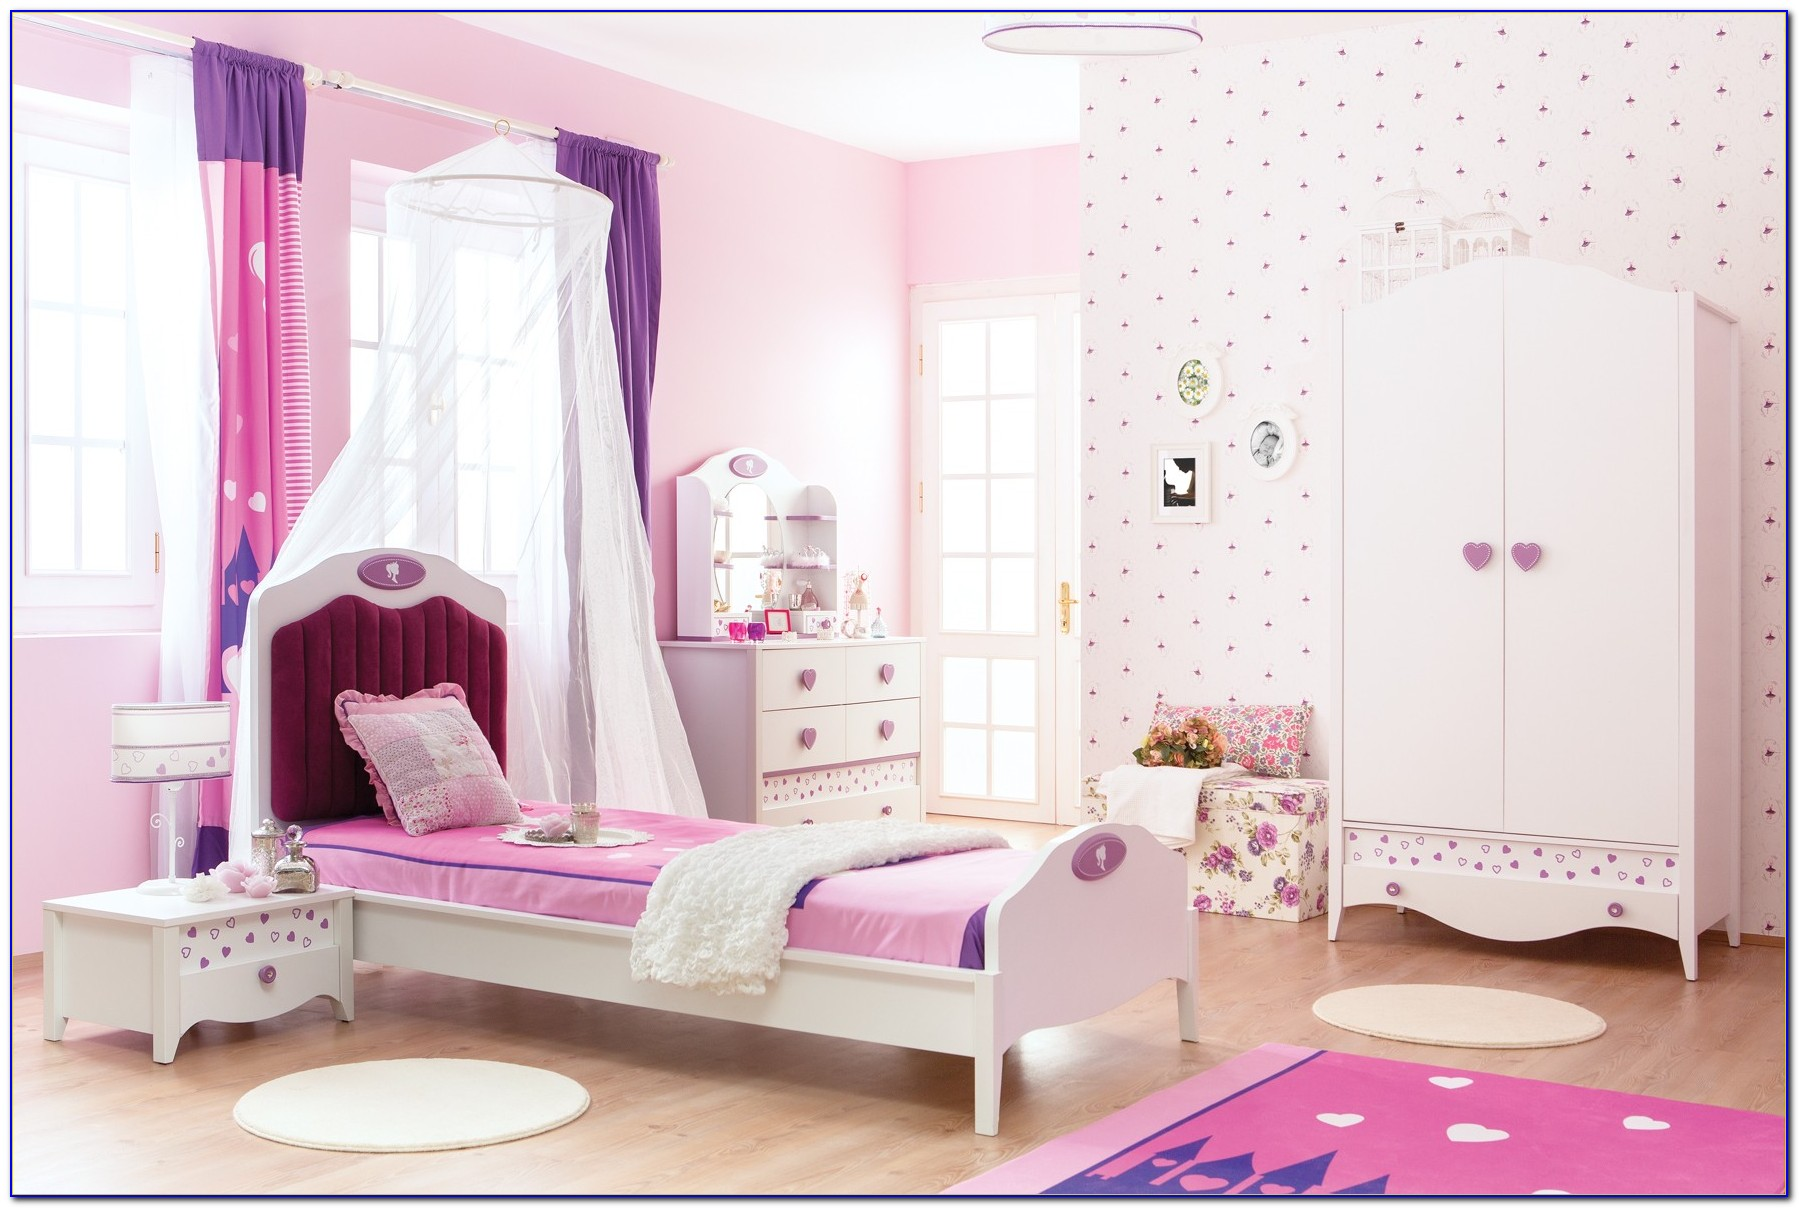 Quality Children's Bedroom Sets